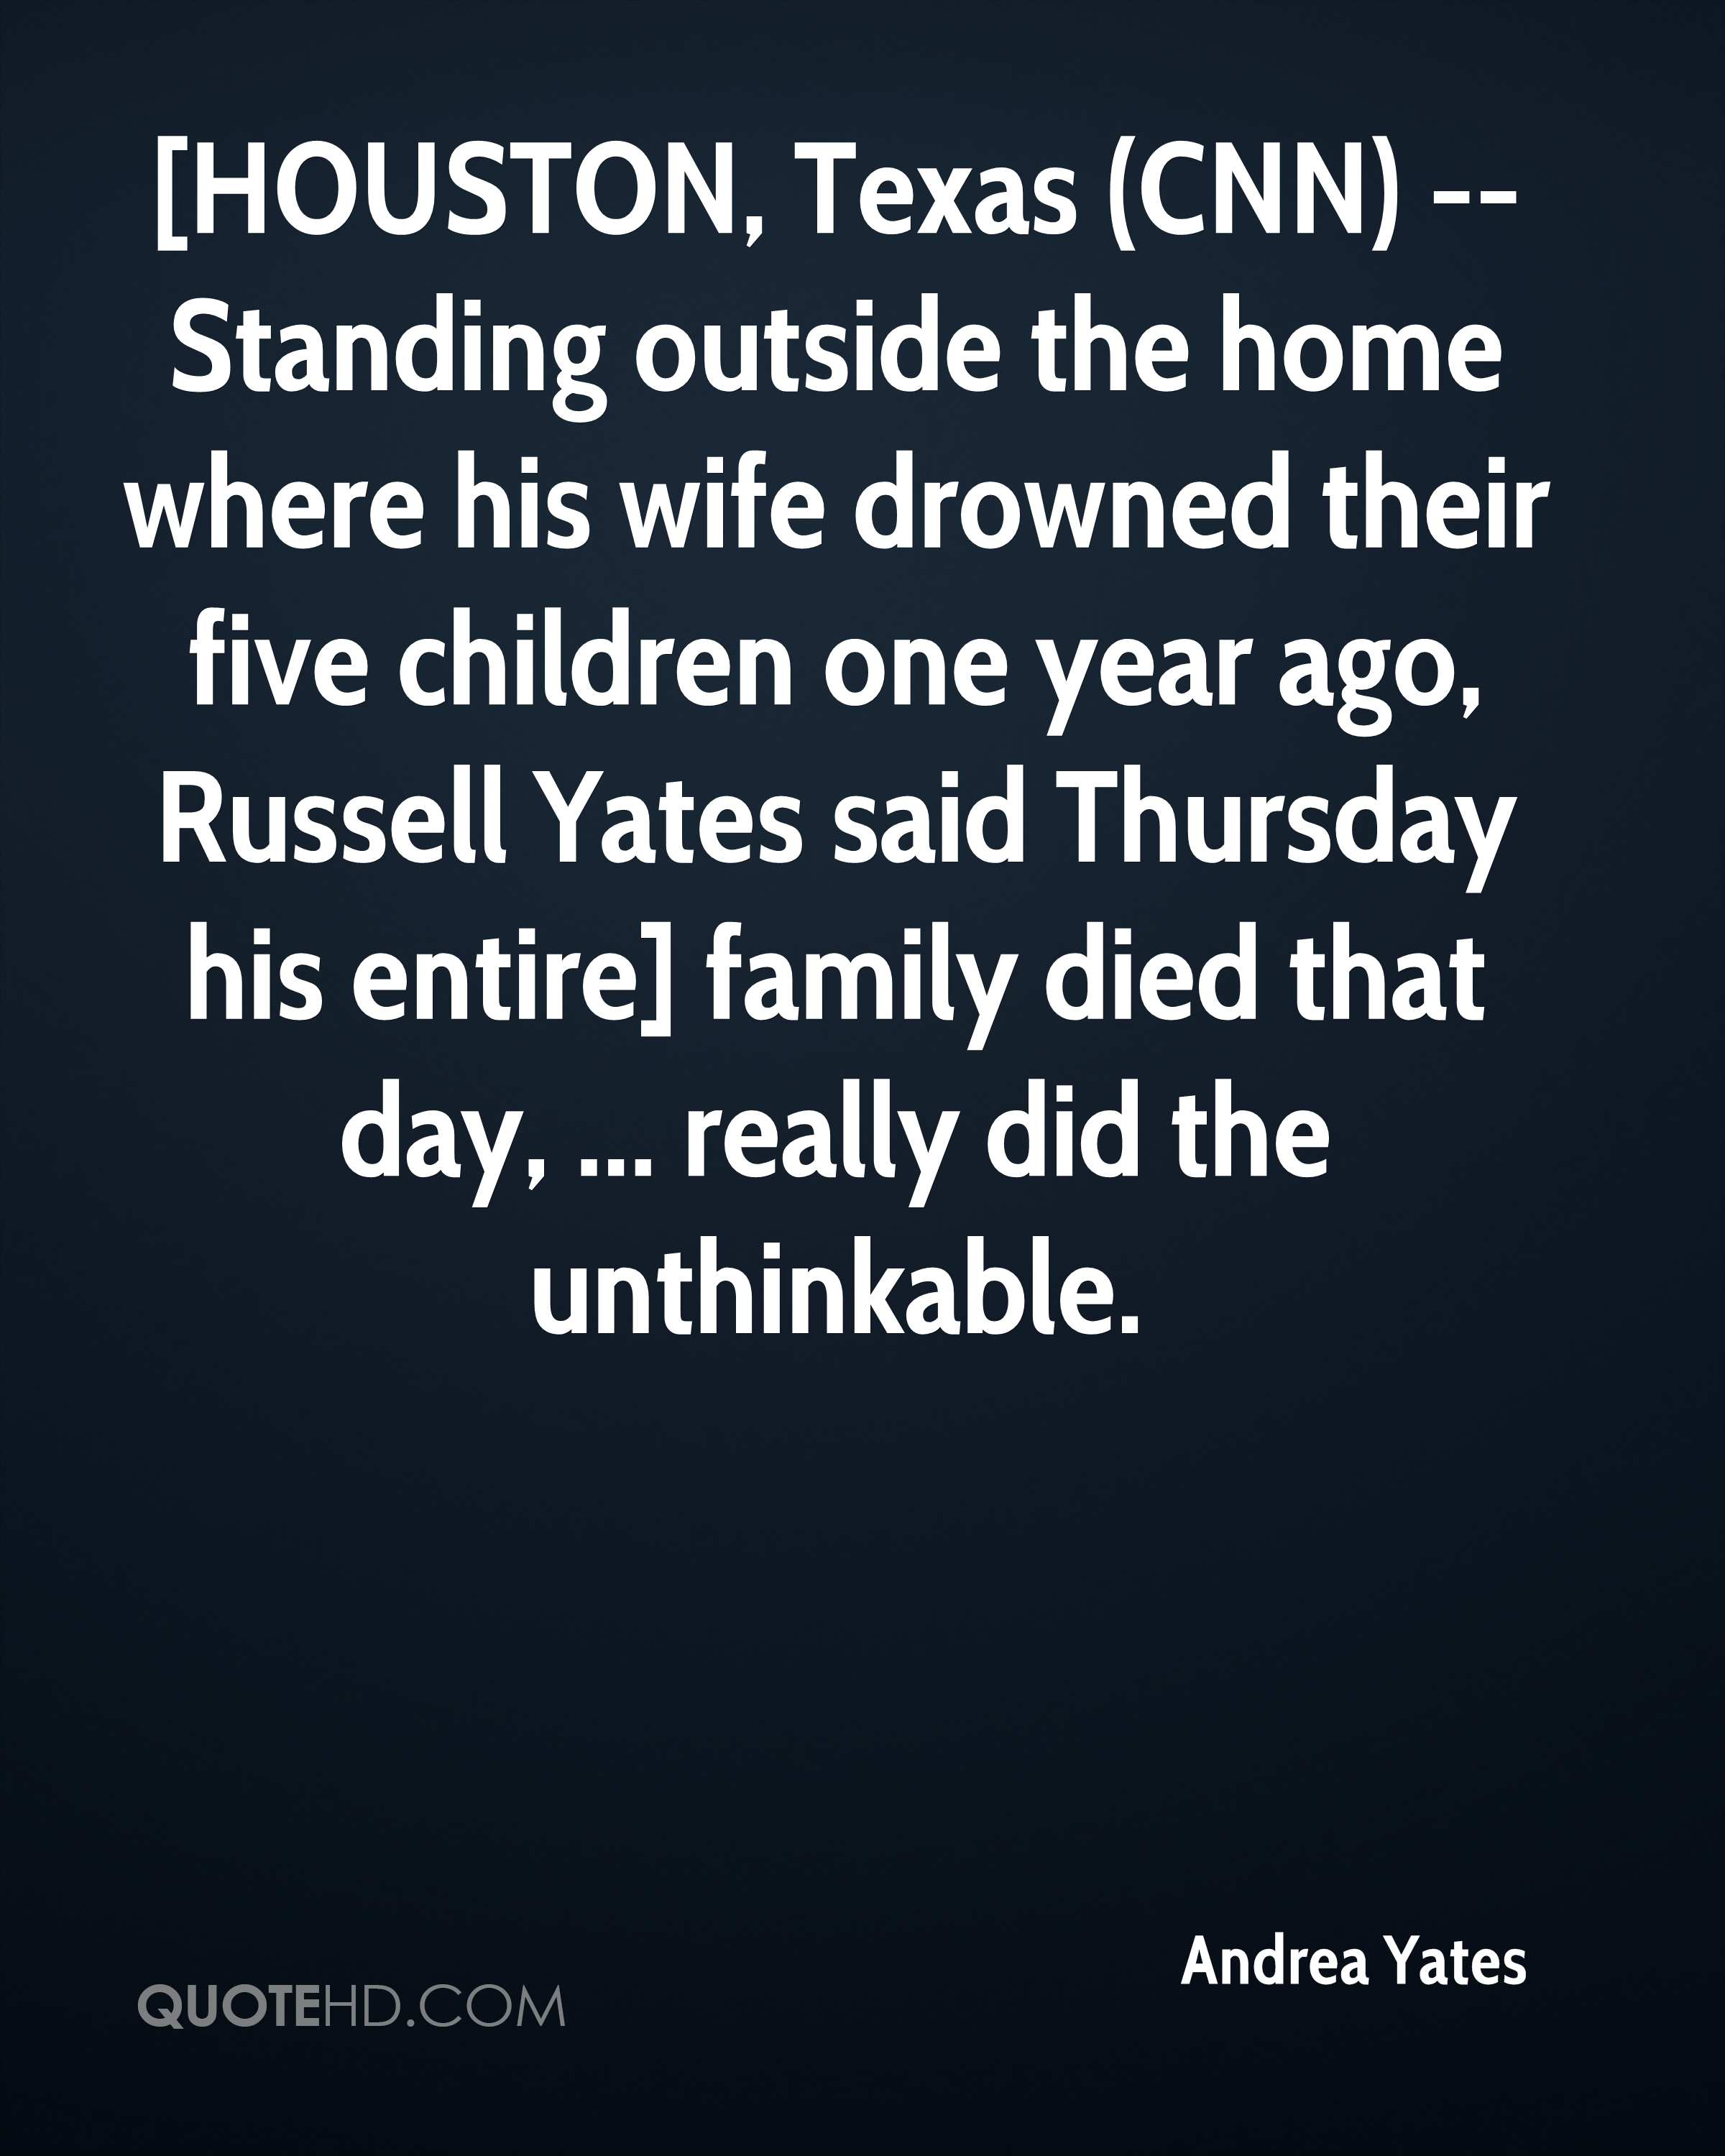 [HOUSTON, Texas (CNN) -- Standing outside the home where his wife drowned their five children one year ago, Russell Yates said Thursday his entire] family died that day, ... really did the unthinkable.